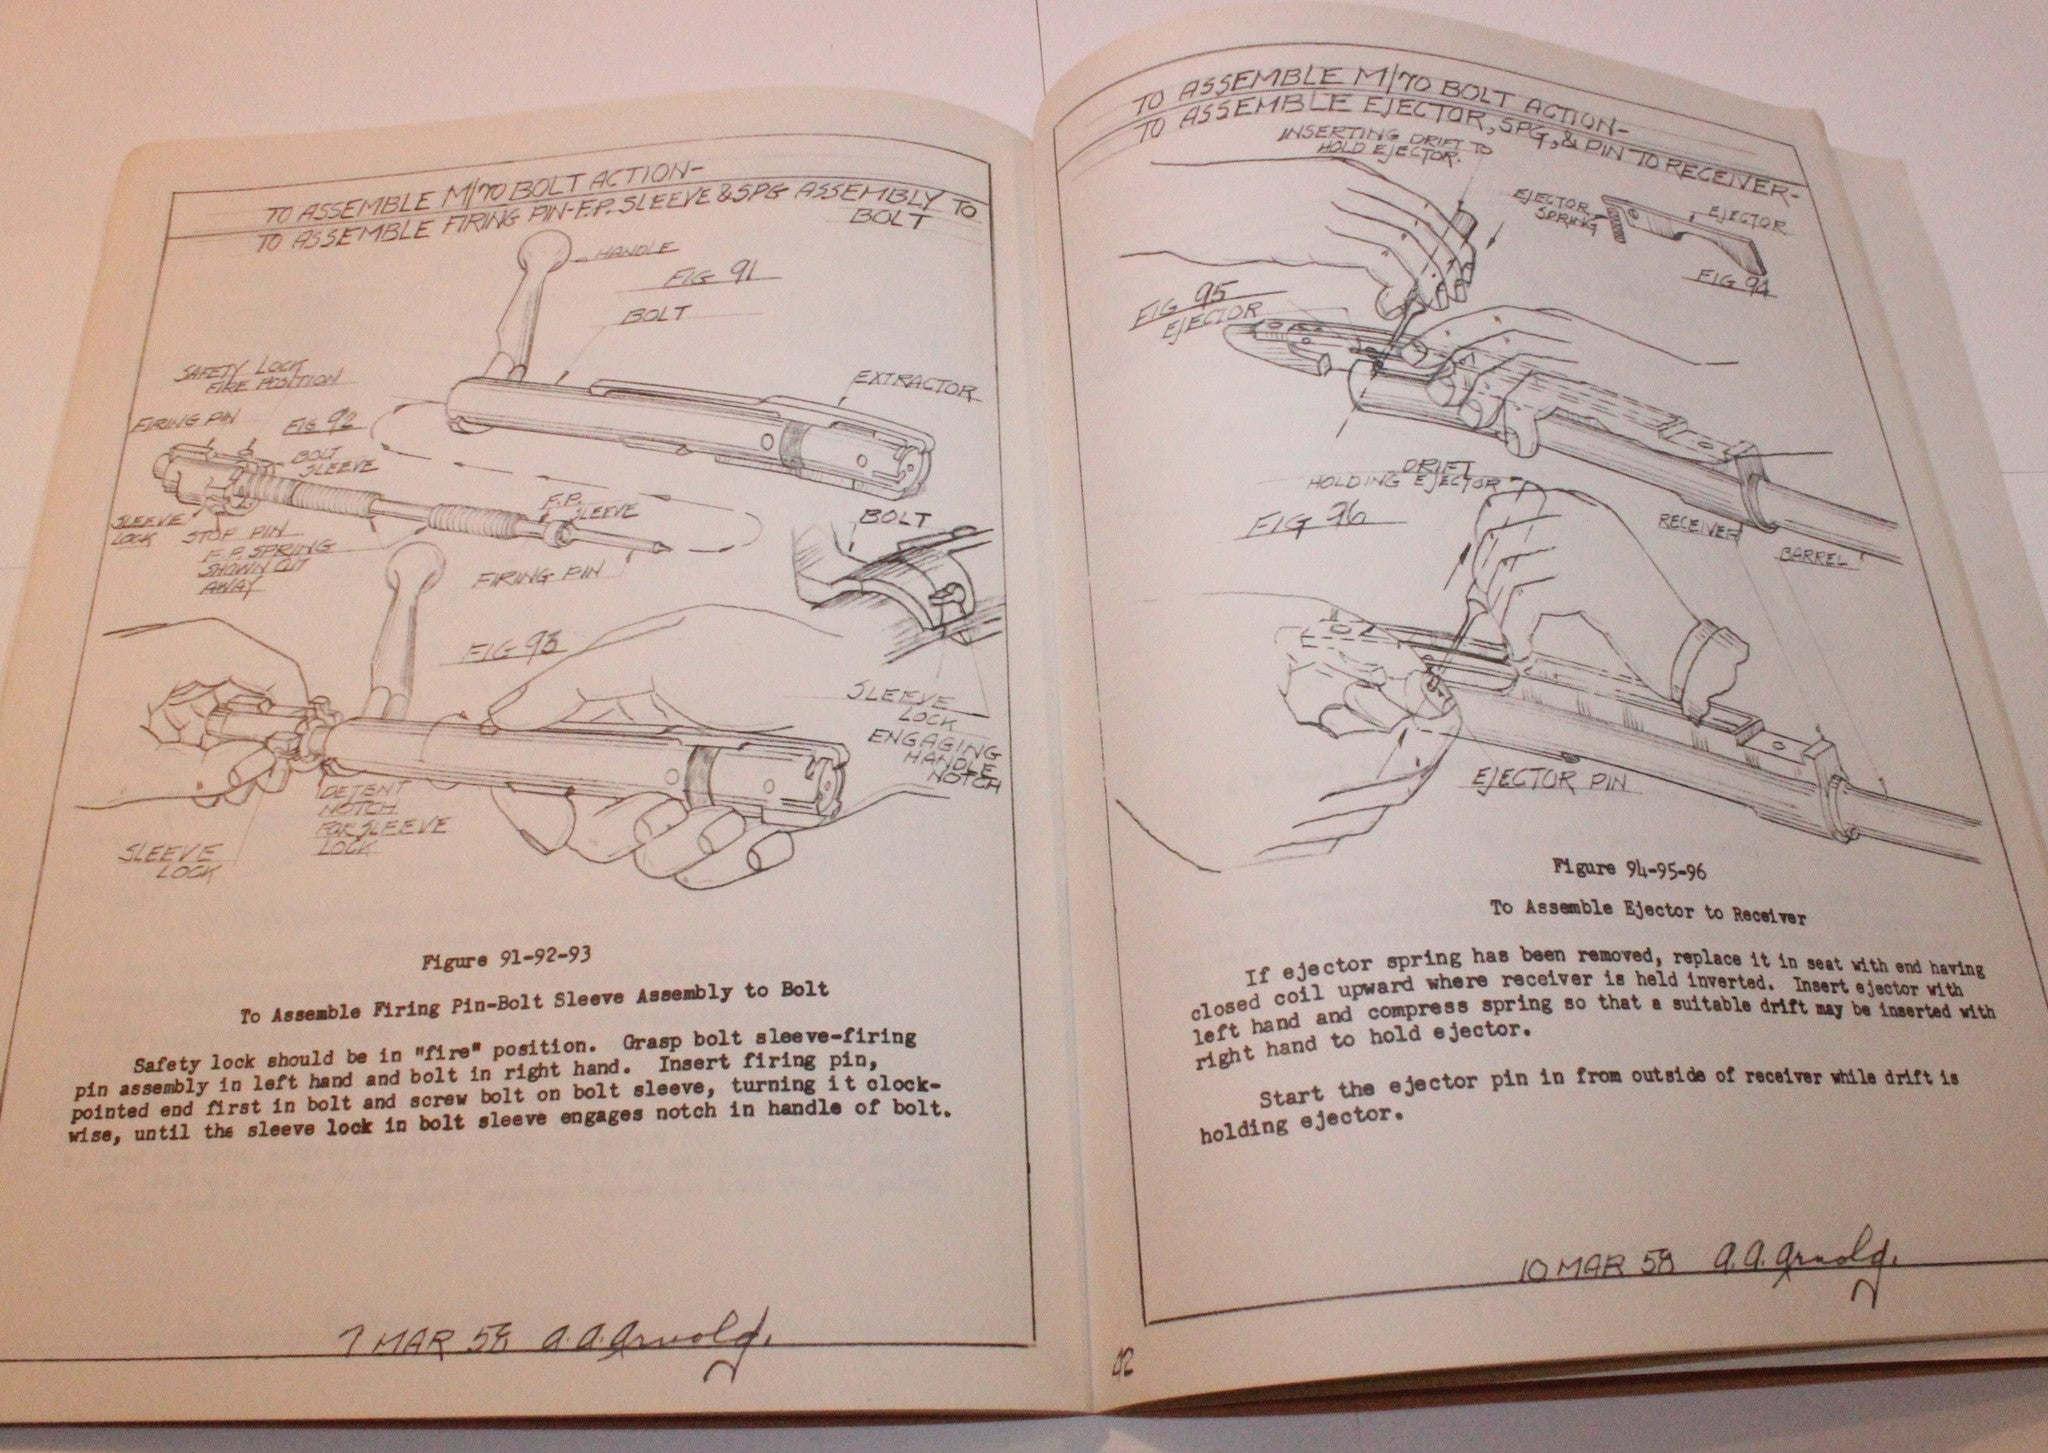 1958 Winchester Model 70 Take-Down and Assembly Operations Manual - REPRINT